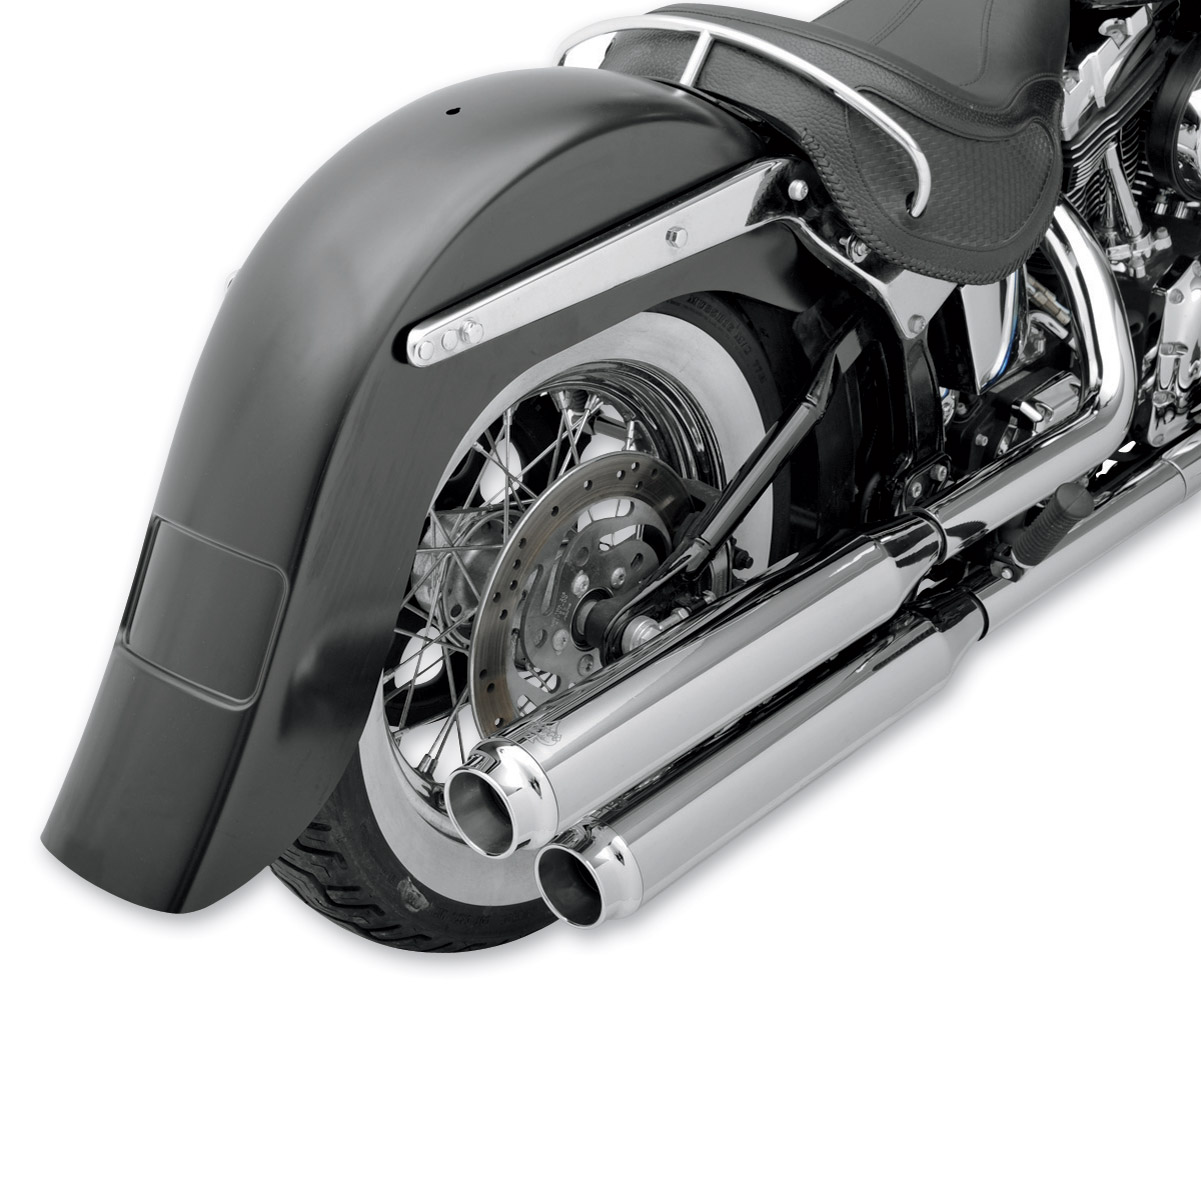 Klock Werks Stretch Rear Fender with Frenched Plate Pocket